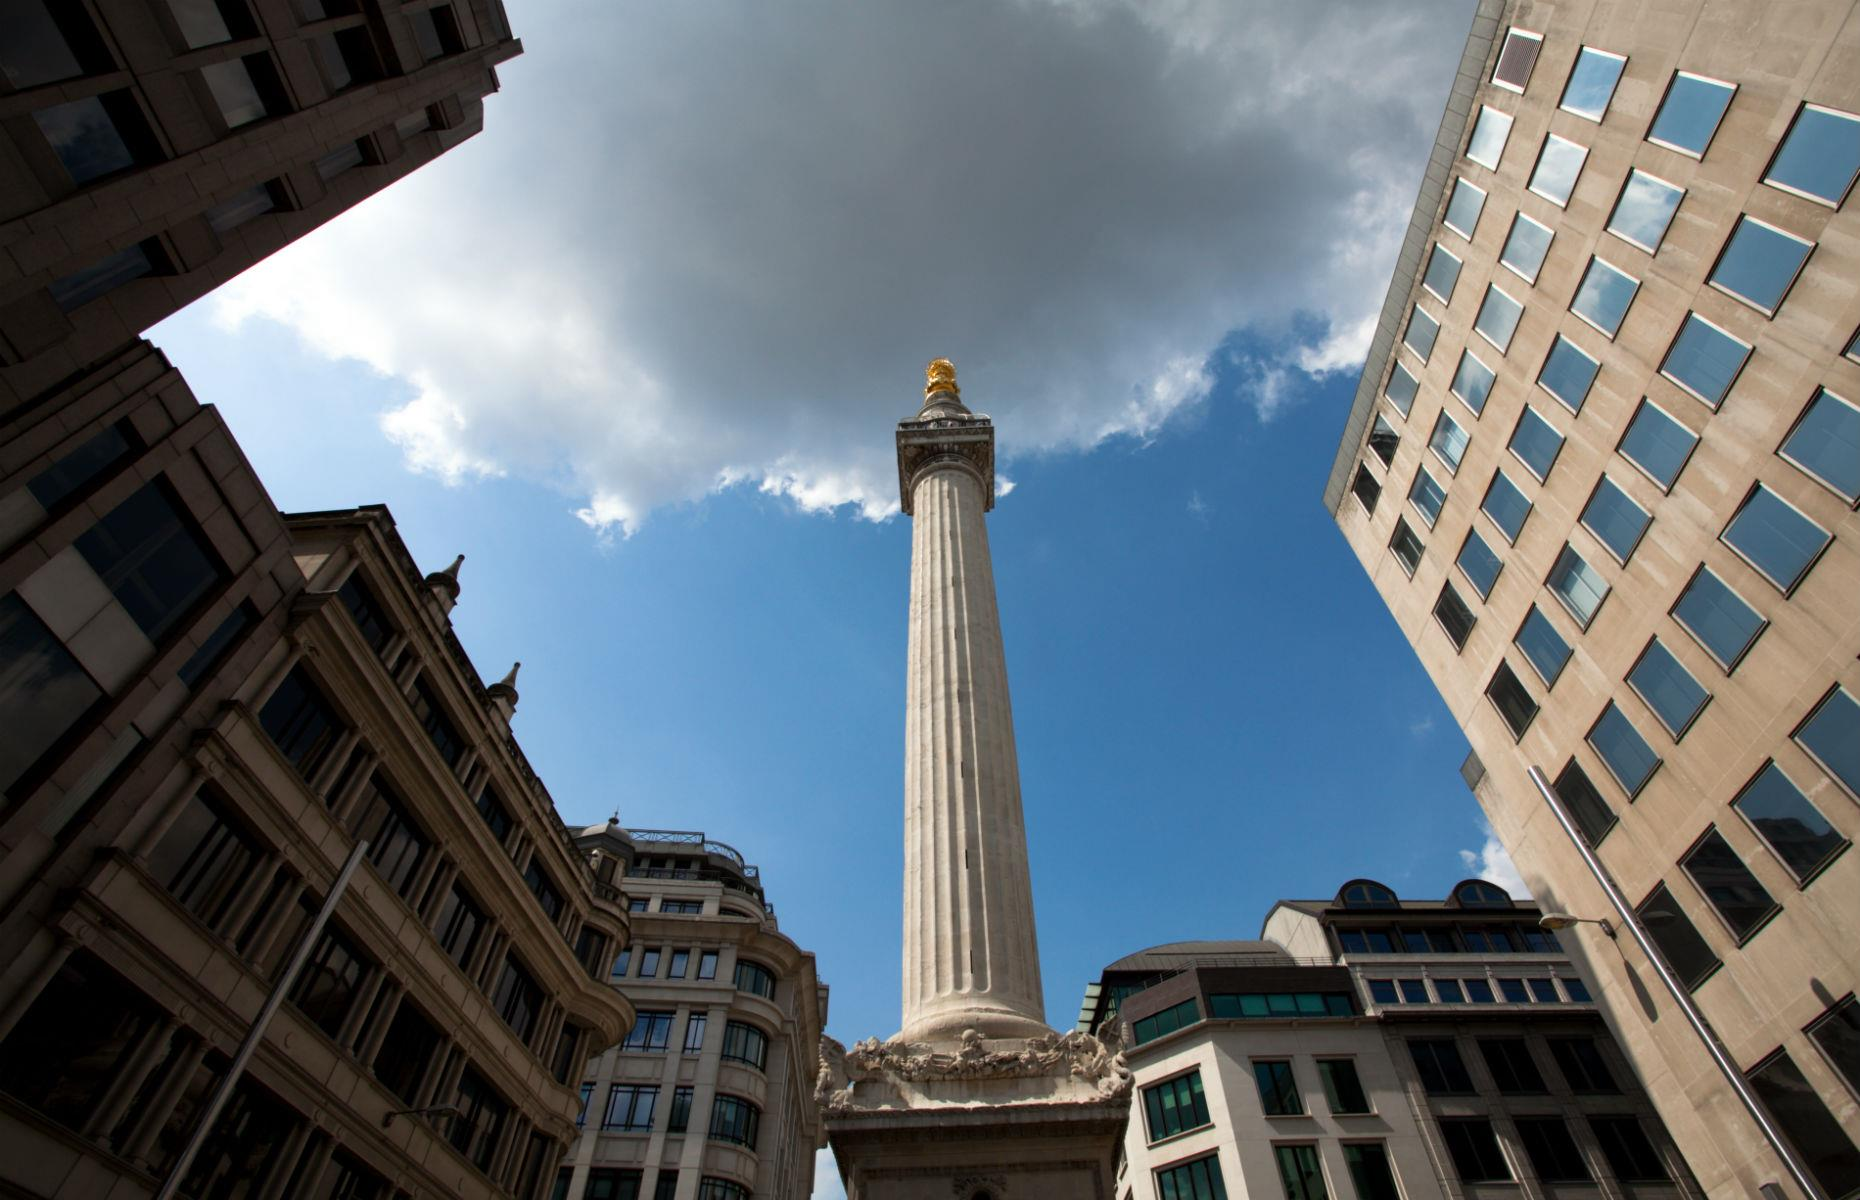 Slide 36 of 45: The Monument to the Great Fire of London stands at 202 feet (62m) tall in the City of London, near the northern end of London Bridge. Since the monument was completed in 1677, visitors have climbed its steps to enjoy views over England's capital. However in 1842 a cage had to be built around the gallery due to a few incidents of people jumping and falling off.